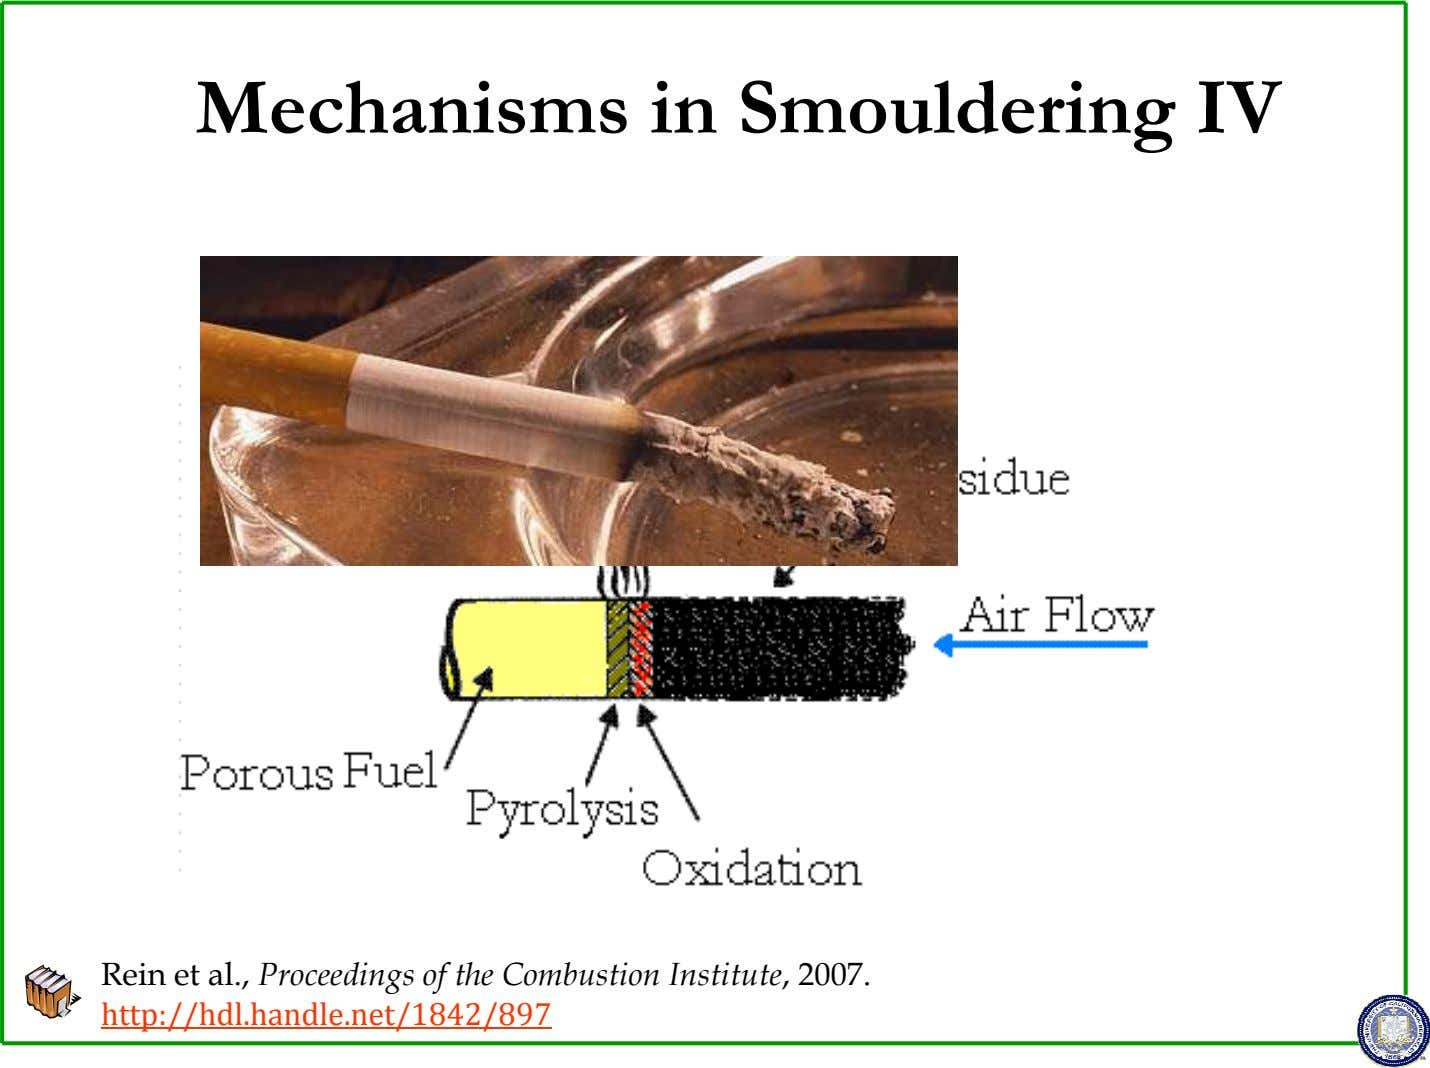 Mechanisms in Smouldering IV Rein et al., Proceedings of the Combustion Institute, 2007. http://hdl.handle.net/1842/897